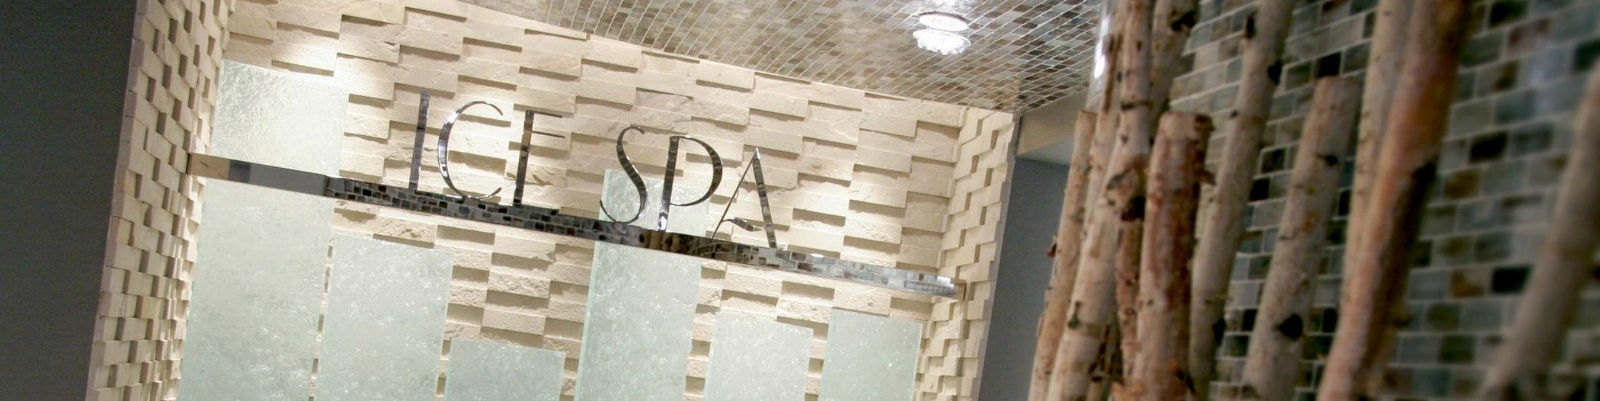 Anchorage Ice Spa Packages